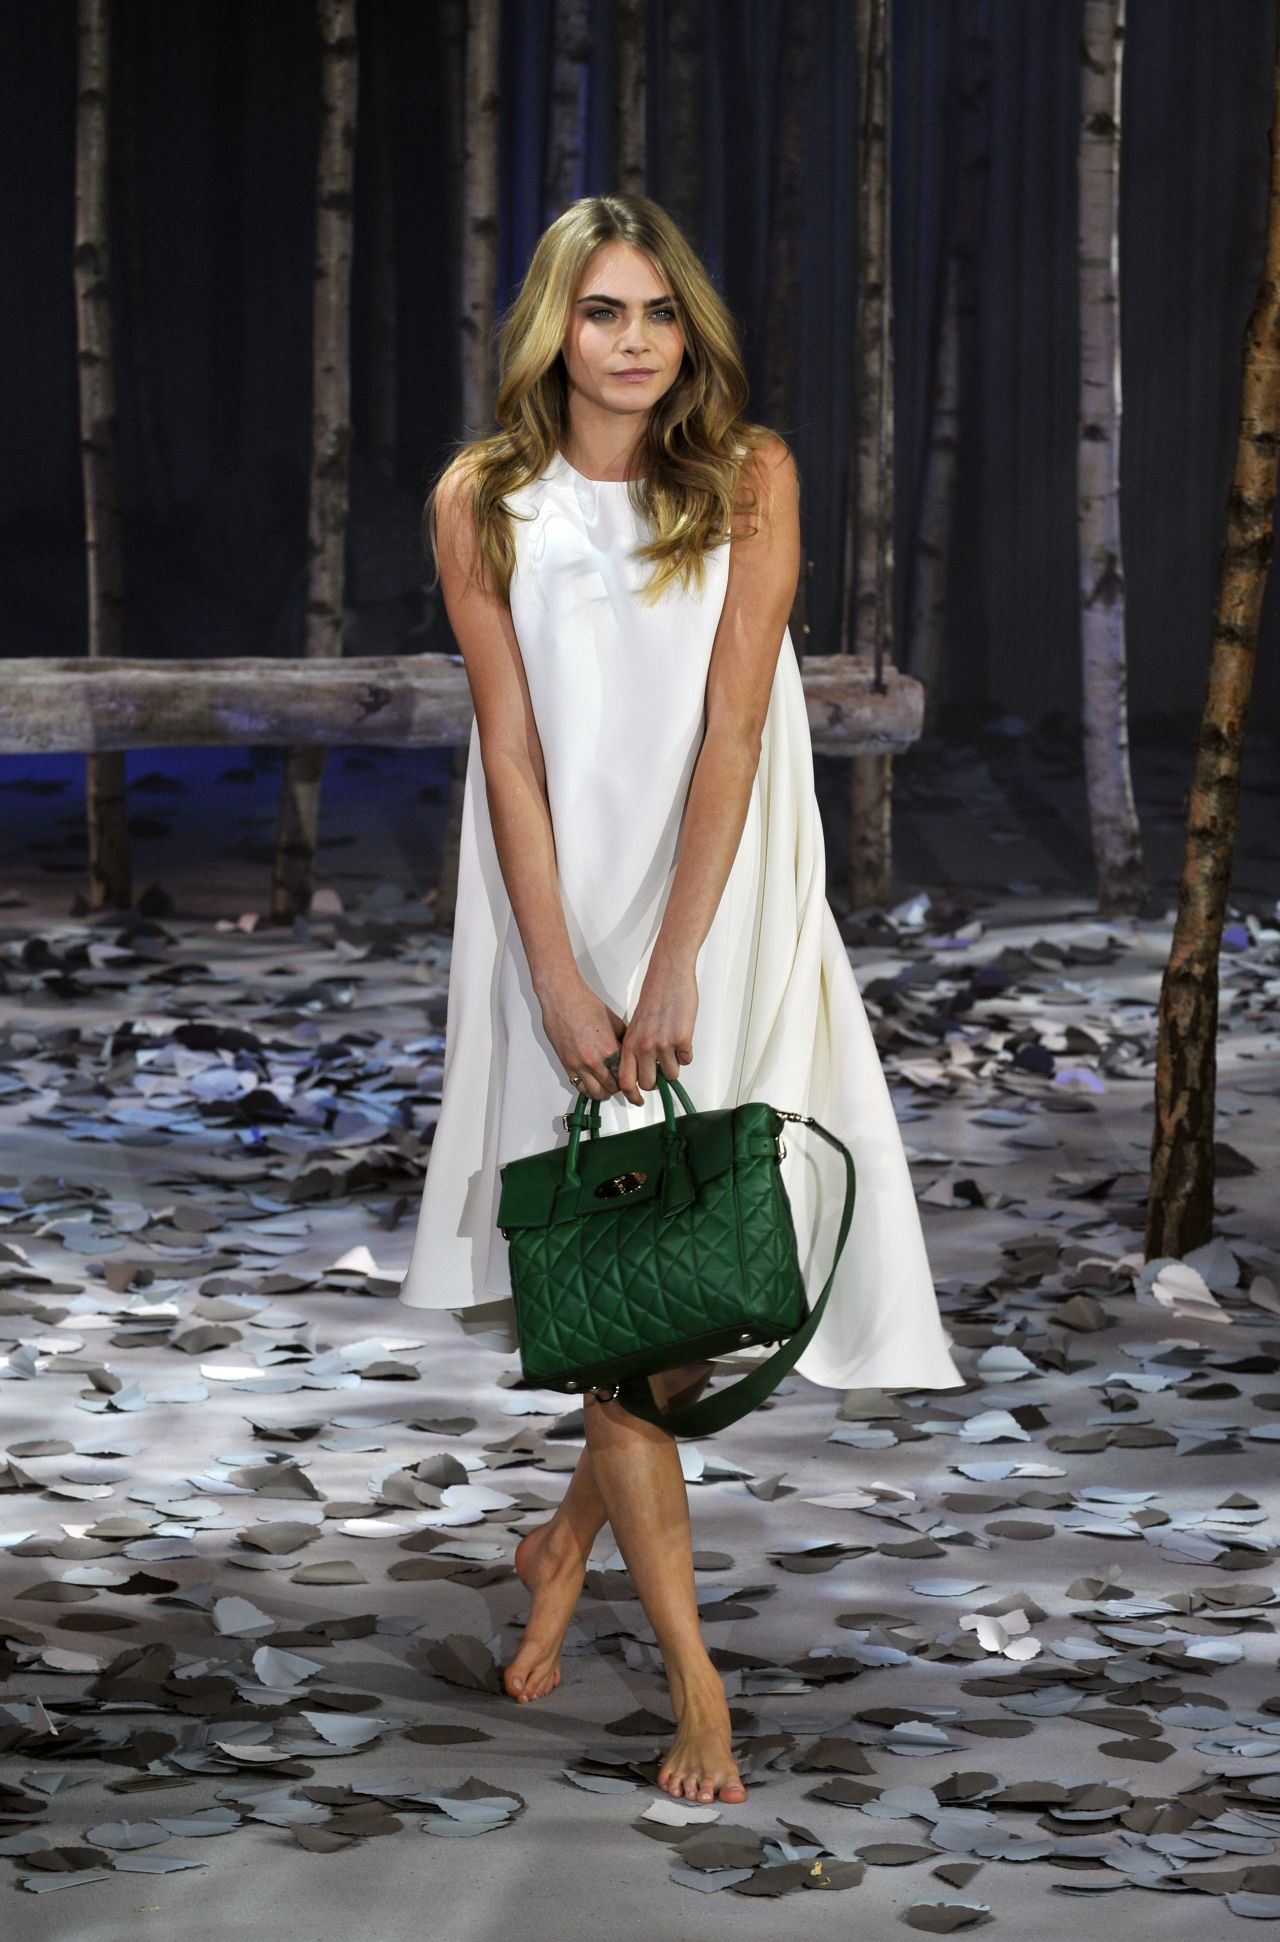 Cara Delevingne - Cara Delevingne Collection by Mulberry - Feb 2014